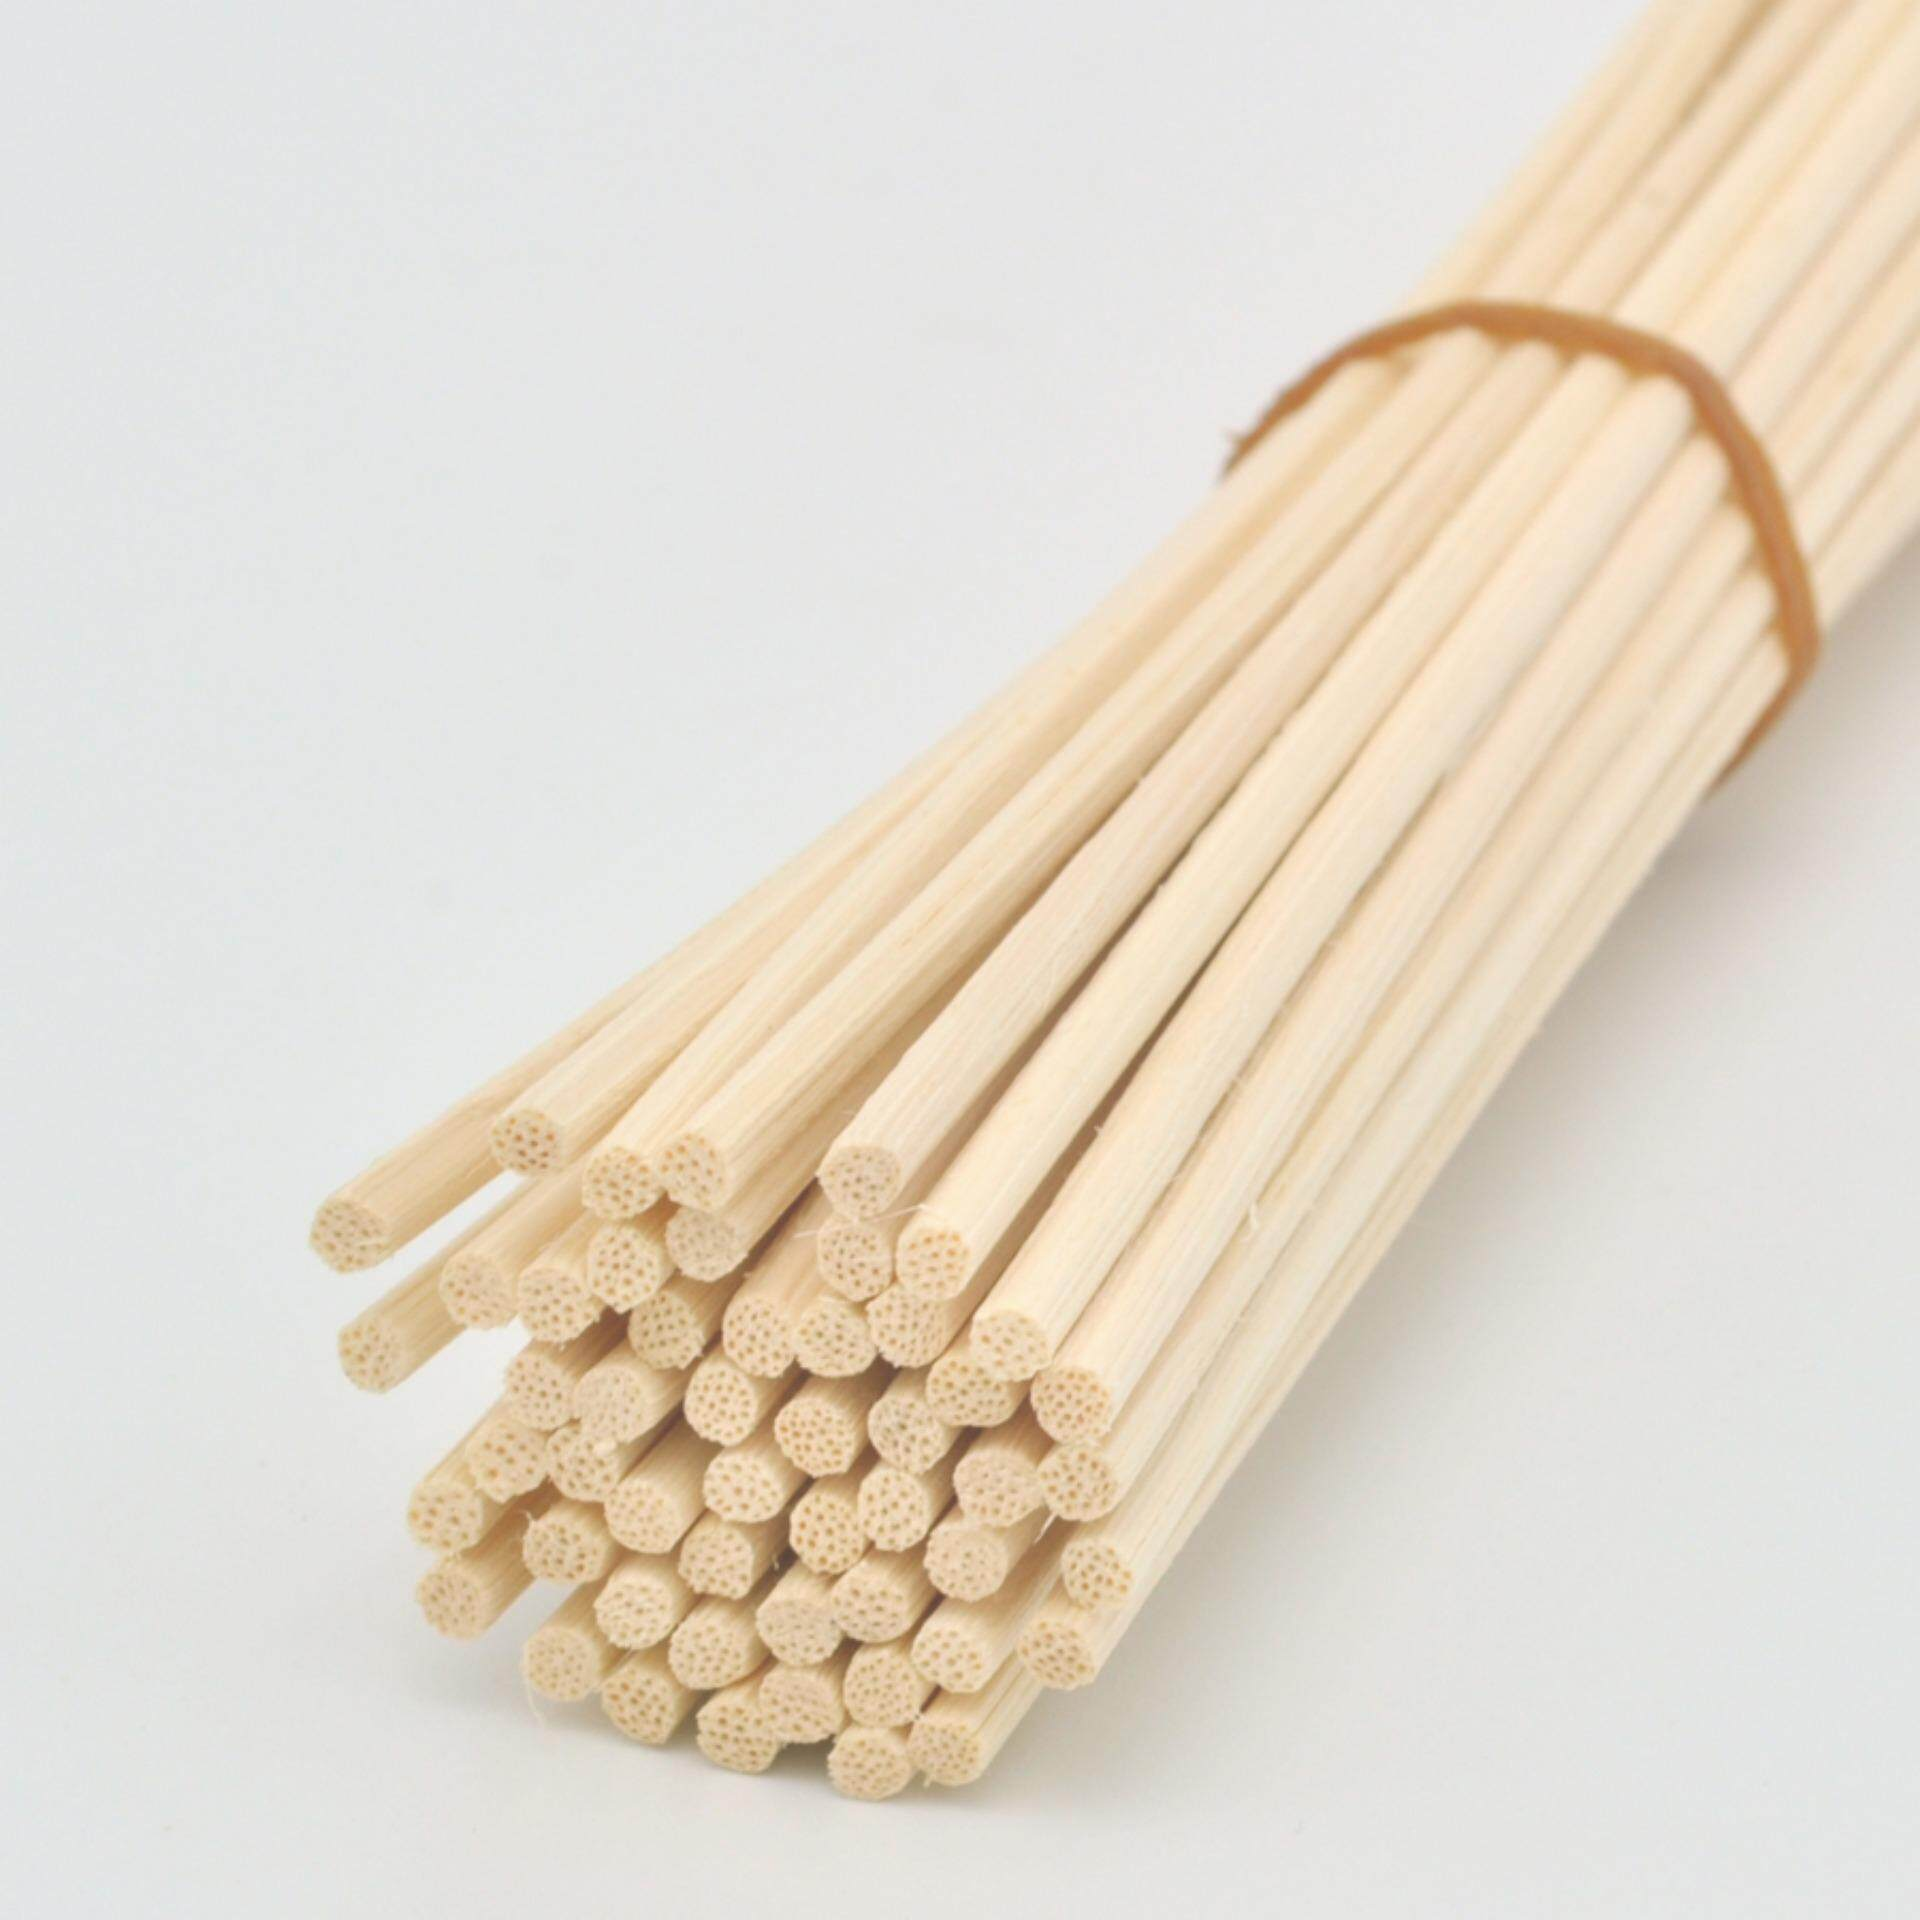 Natural Color Rattan Reed Diffuser Replacement Sticks (30cm x 3mm 100pcs) Aroma Fragence Scent - intl